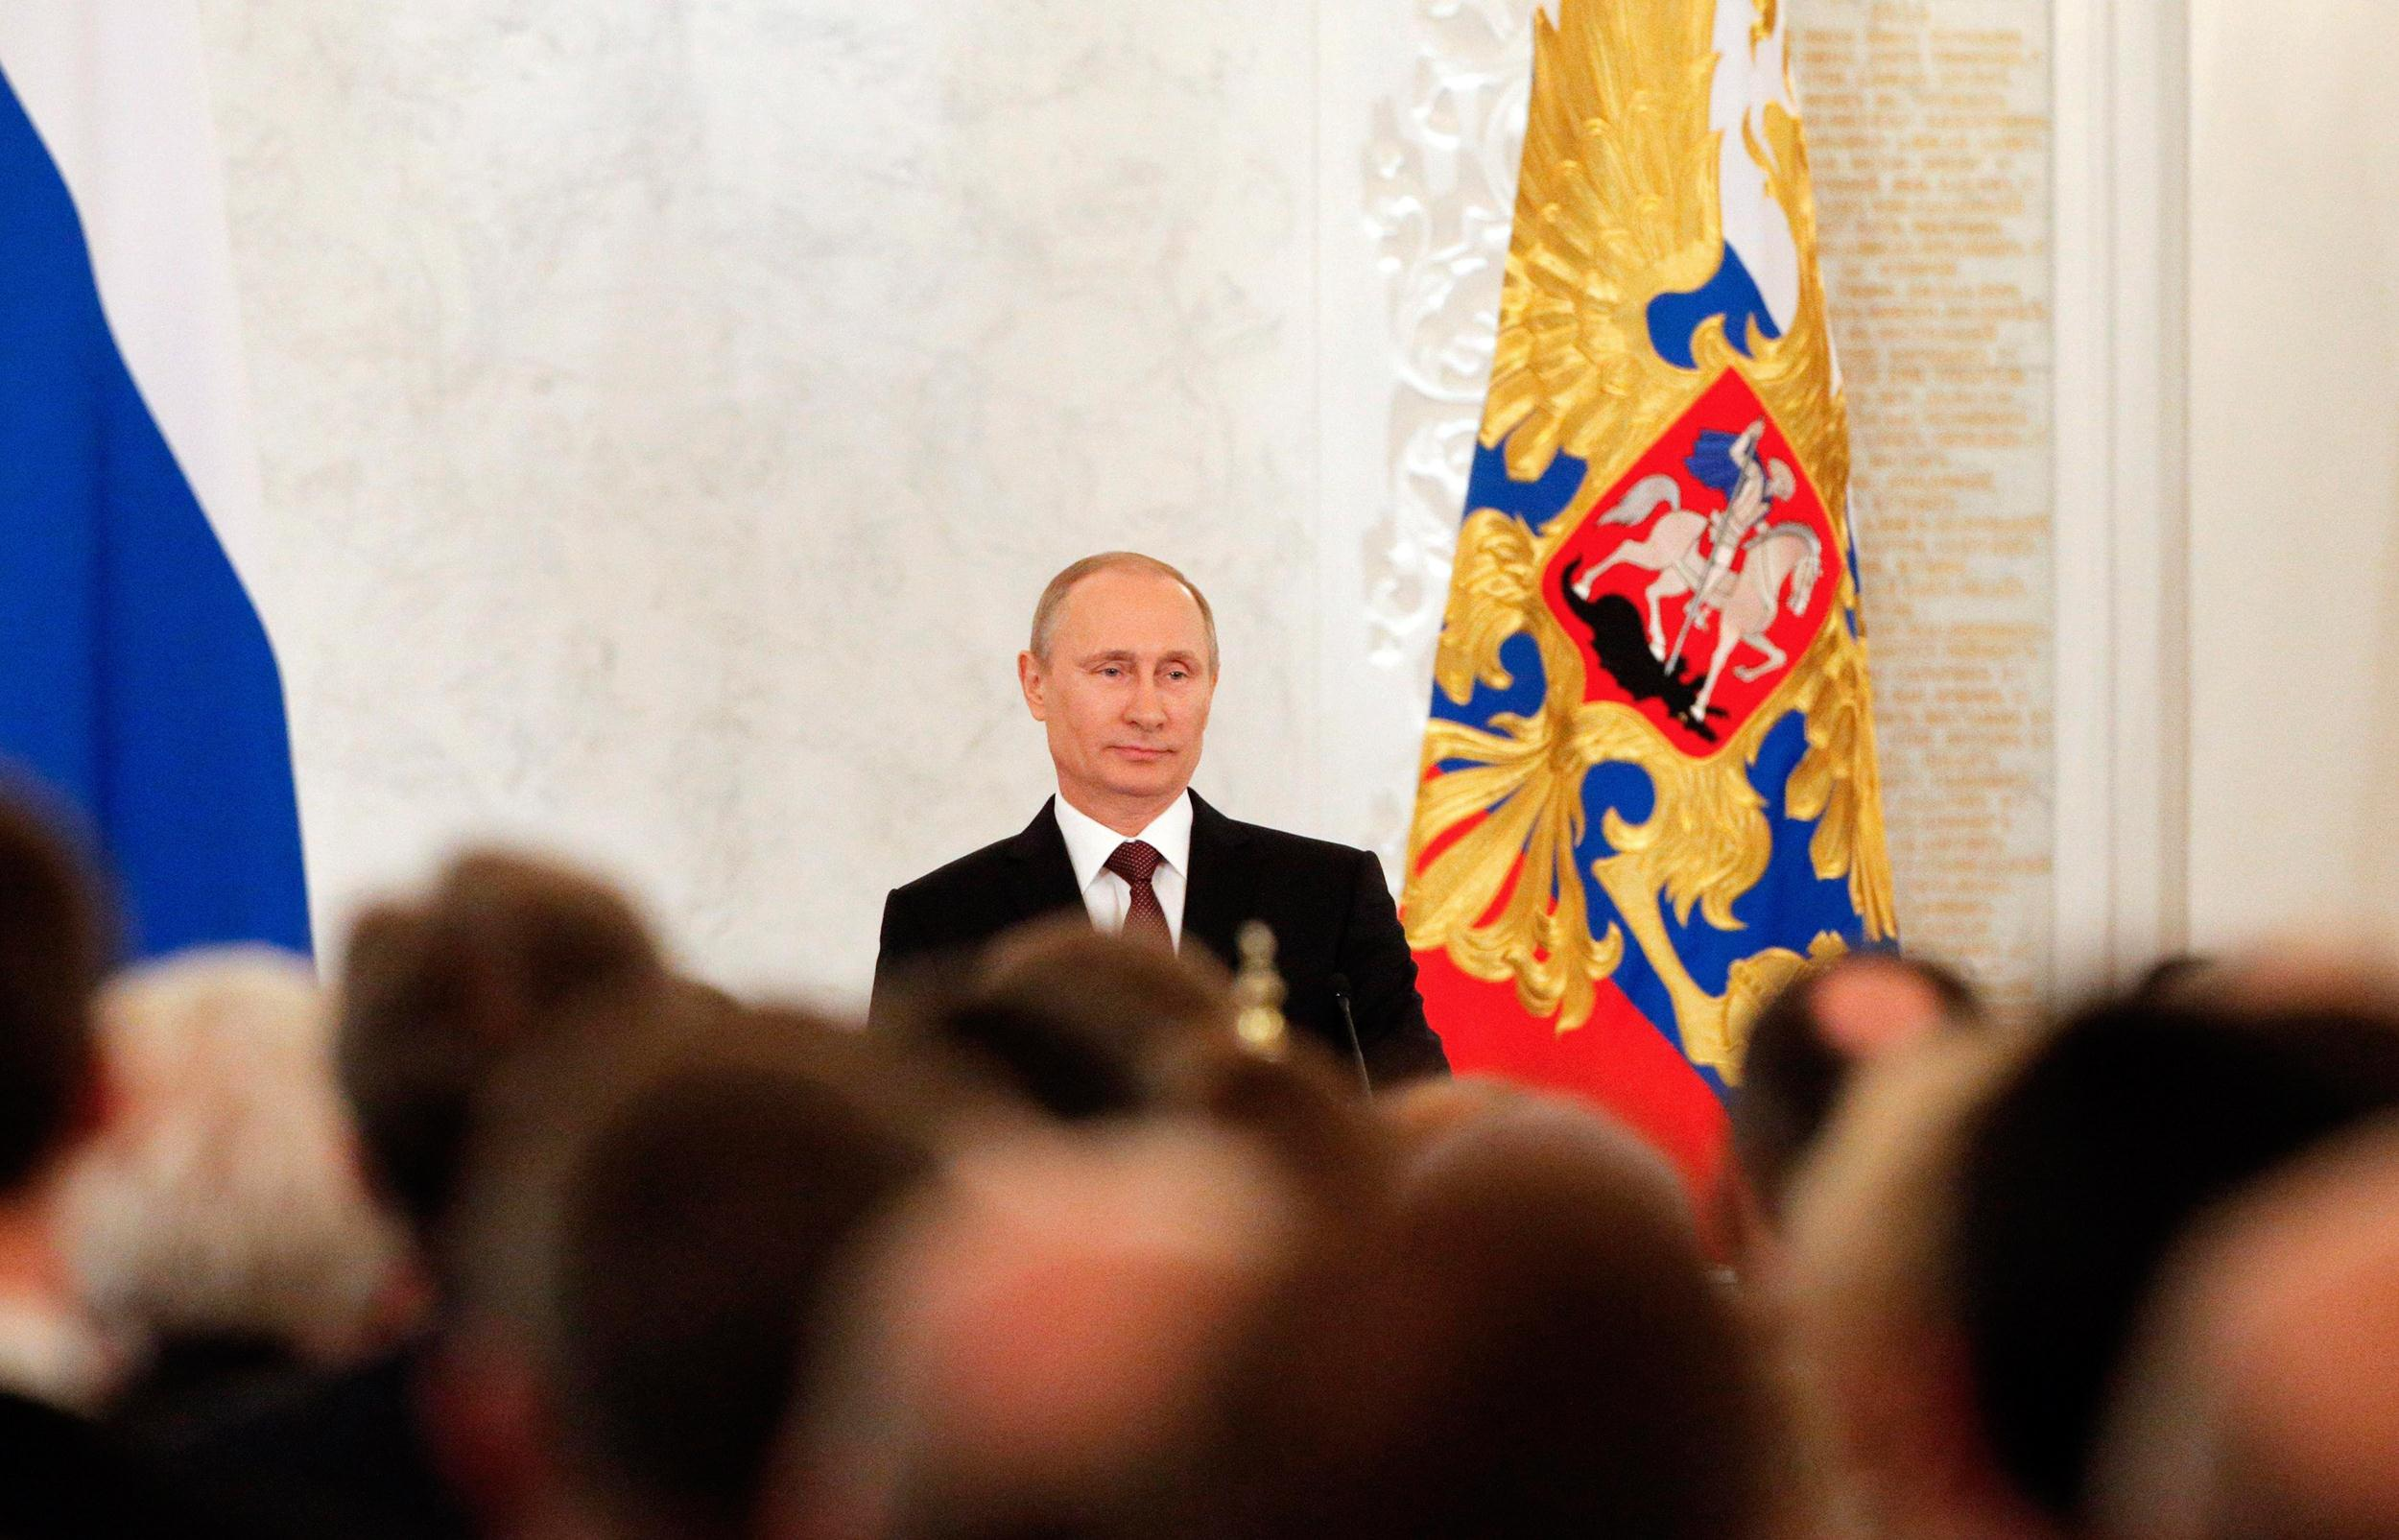 Image: Russian President Vladimir Putin addresses the Federal Assembly at the Kremlin in Moscow